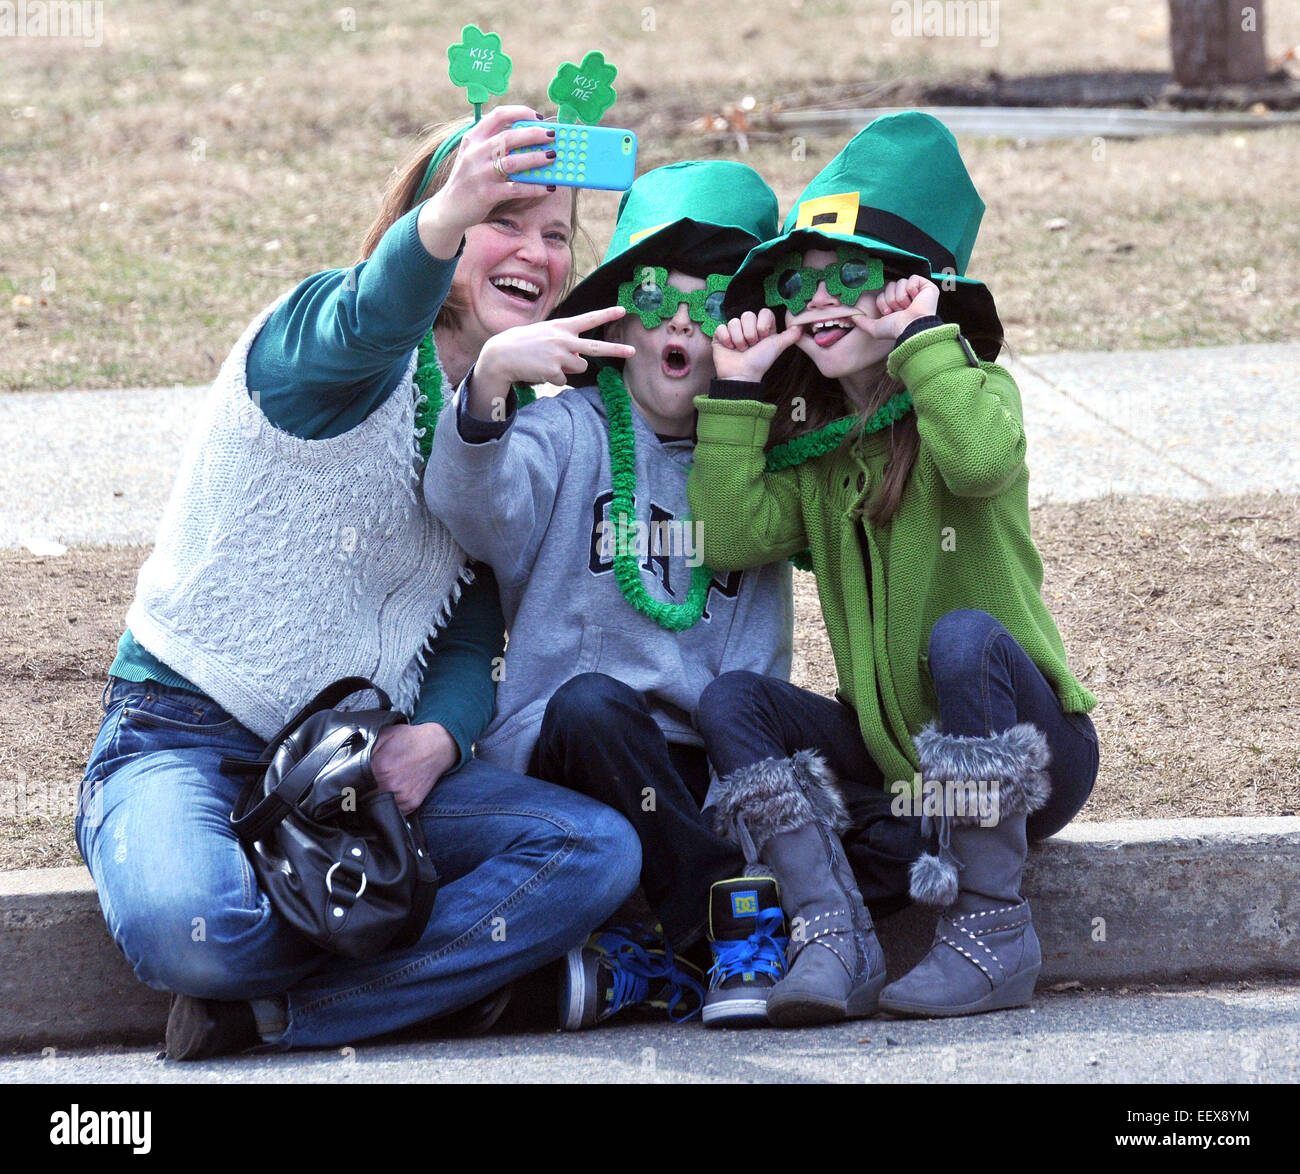 The crowd downtown during the annual Milford St. Patricks Parade, CT USA. - Stock Image